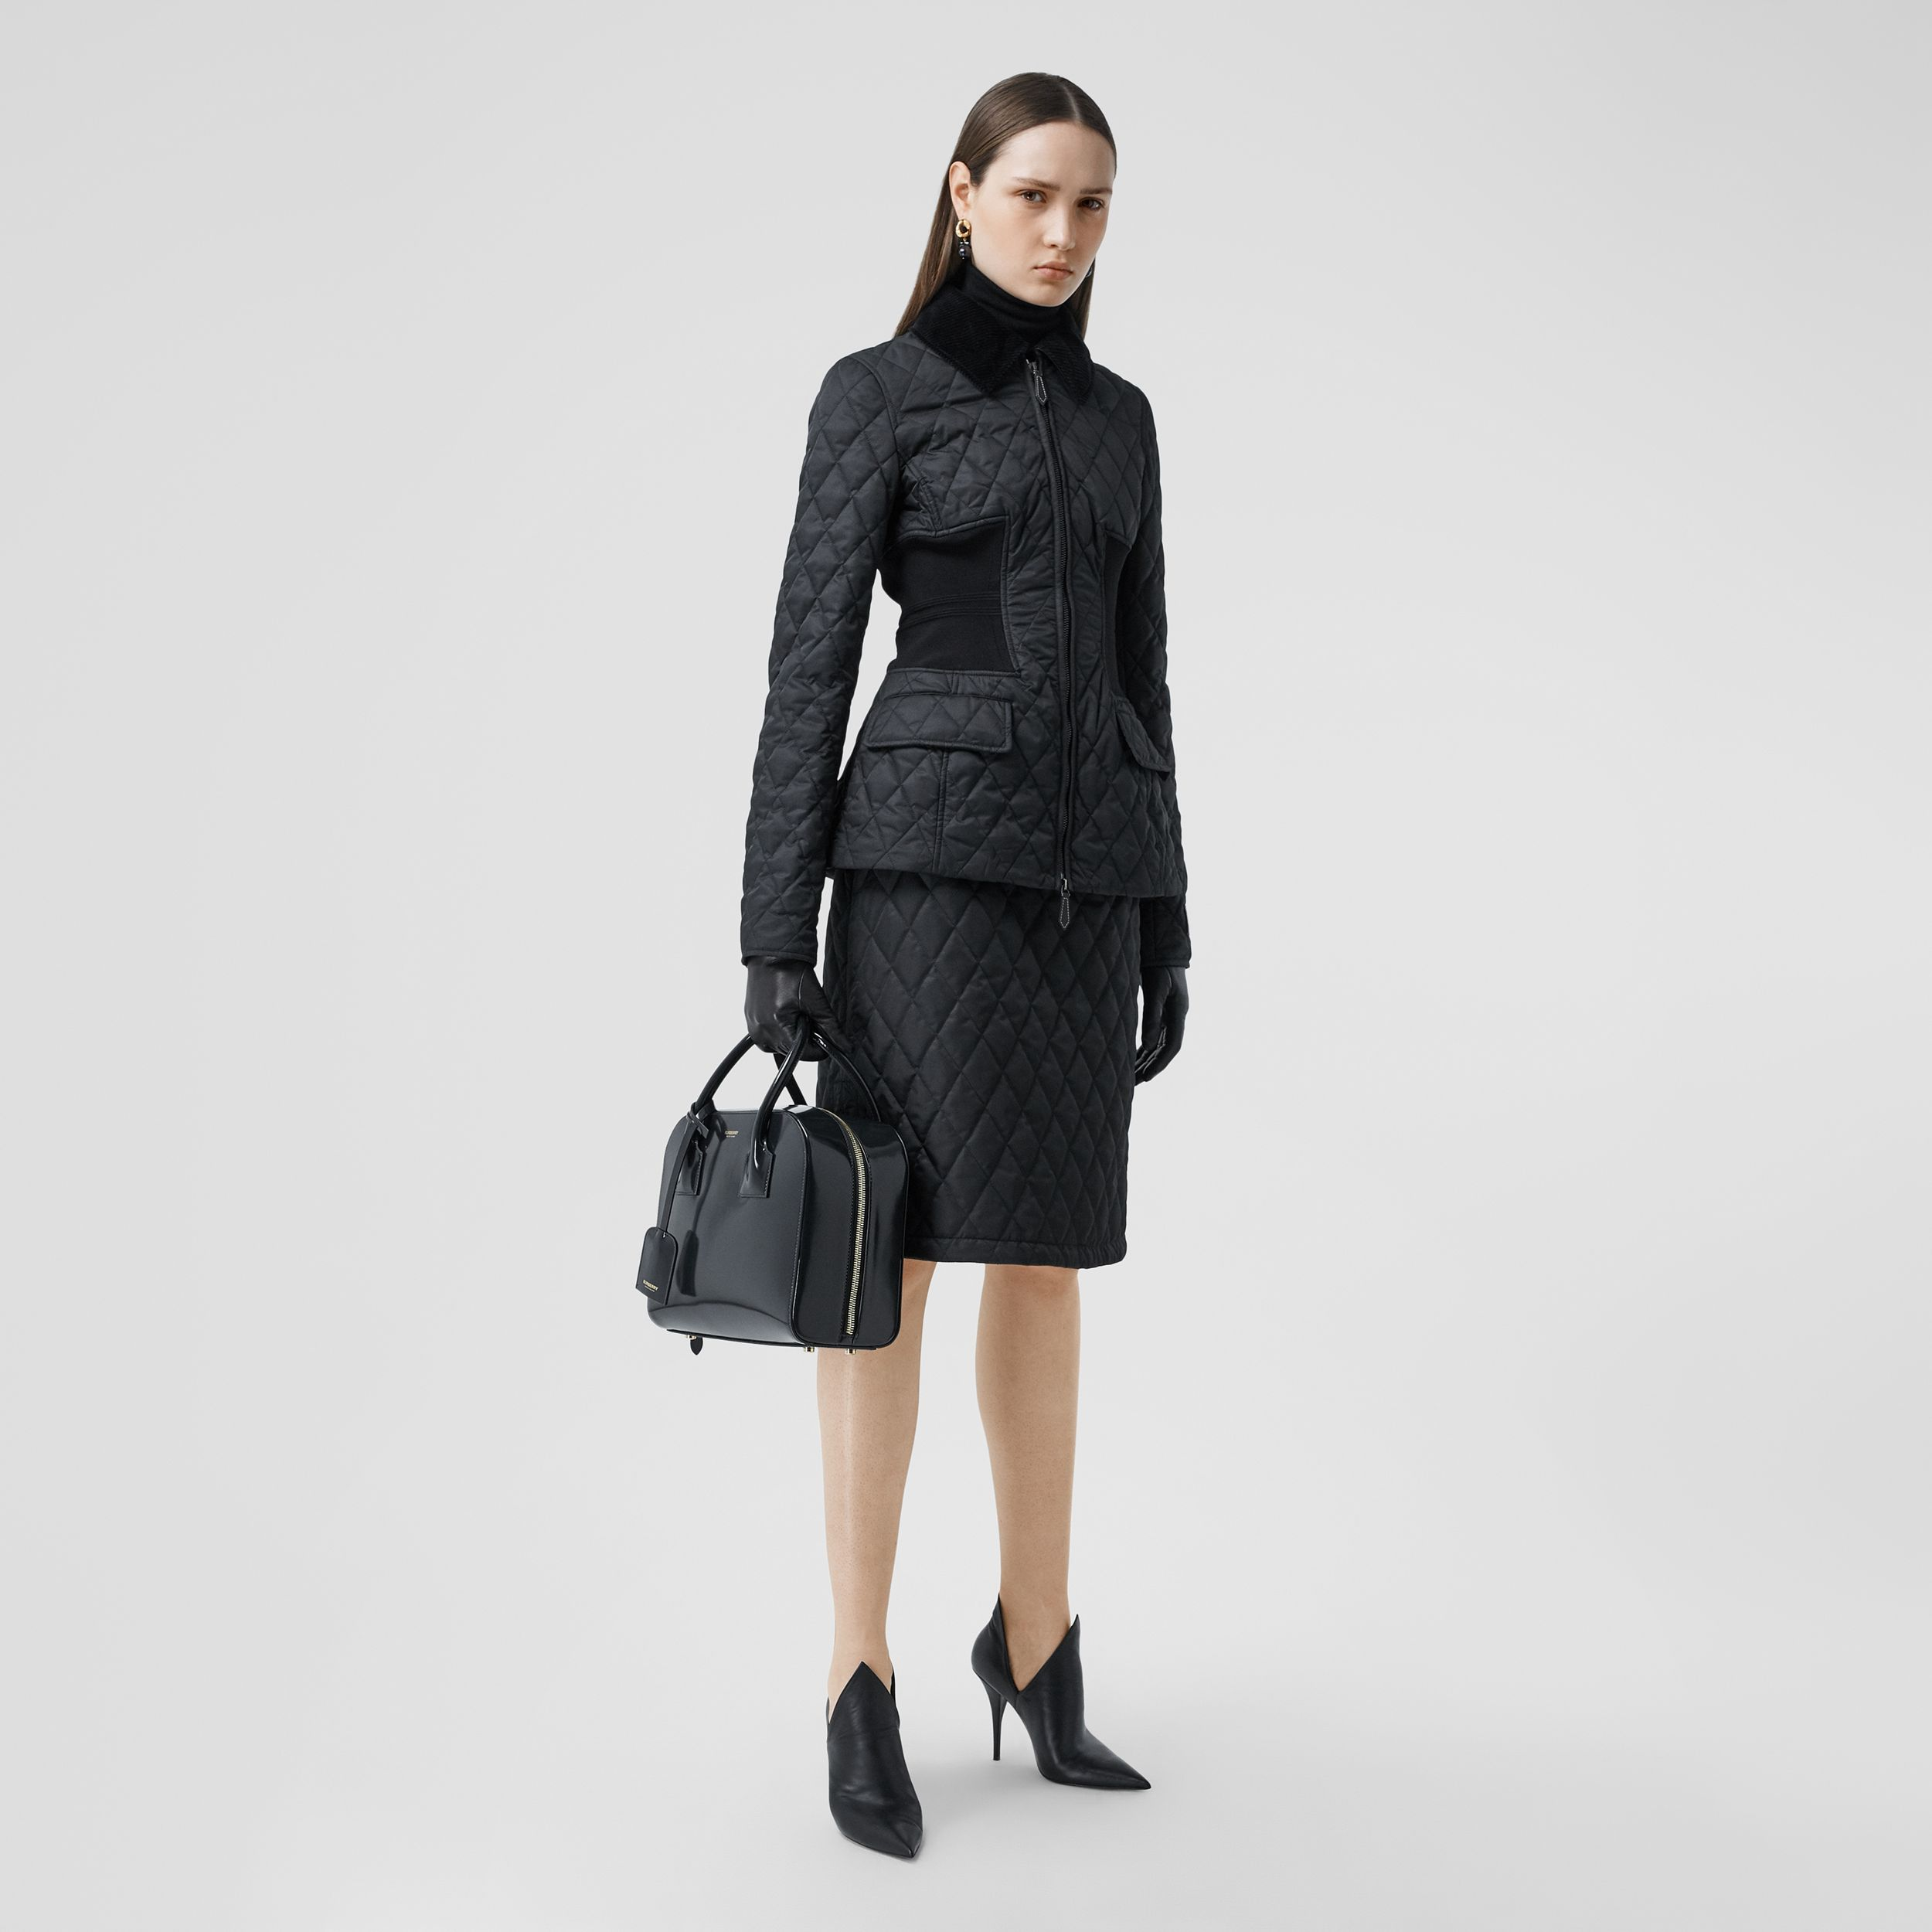 Rib Knit Panel Diamond Quilted Barn Jacket in Black - Women | Burberry Hong Kong S.A.R. - 1